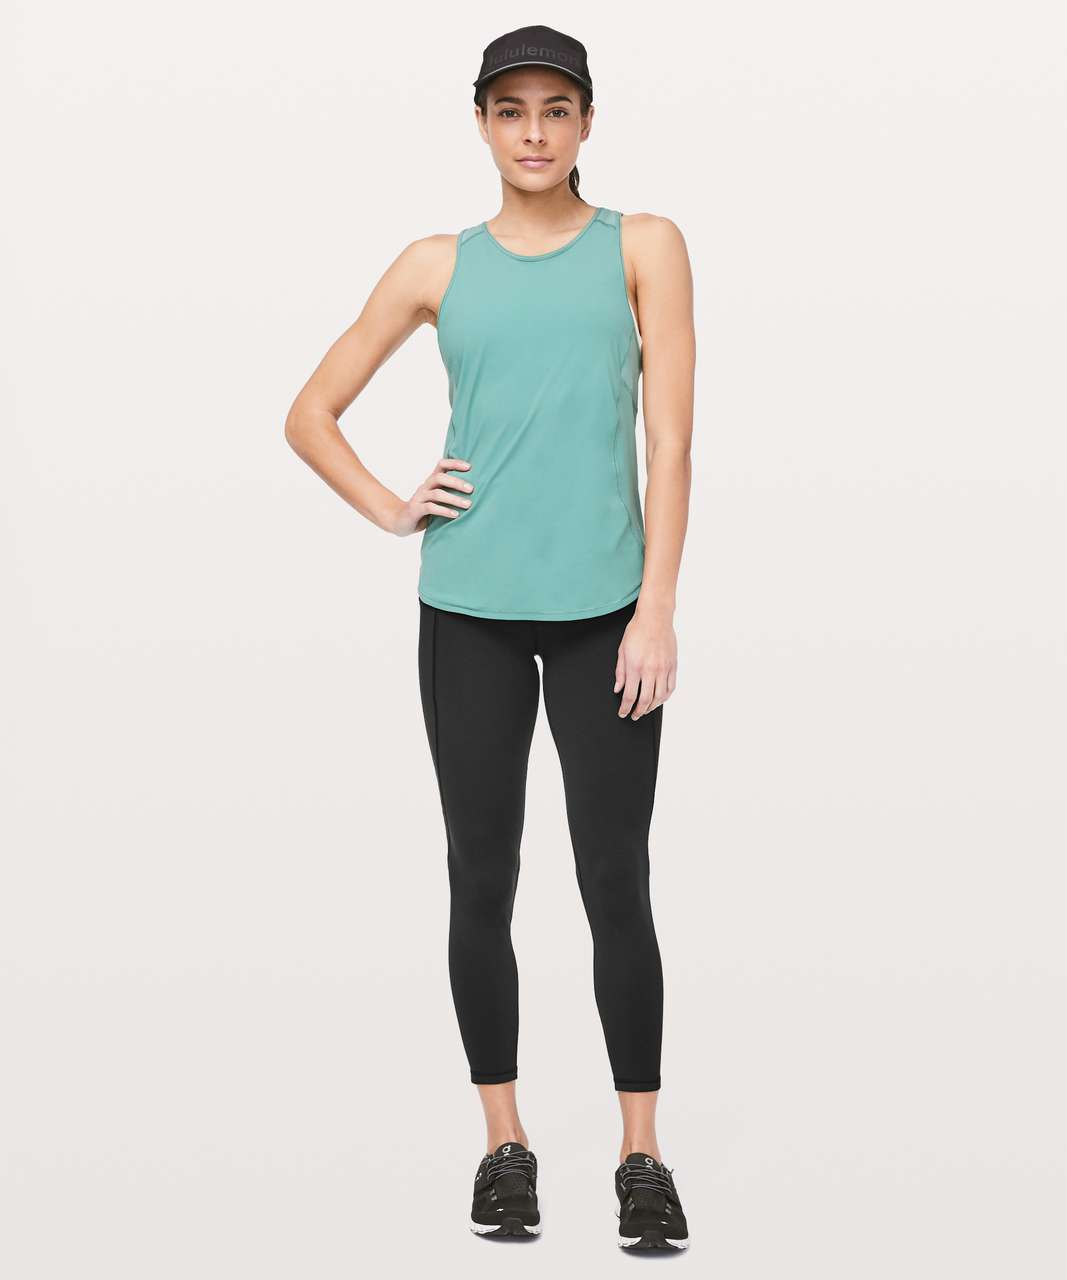 "Lululemon Time To Sweat 7/8 Tight 25"" - Black"